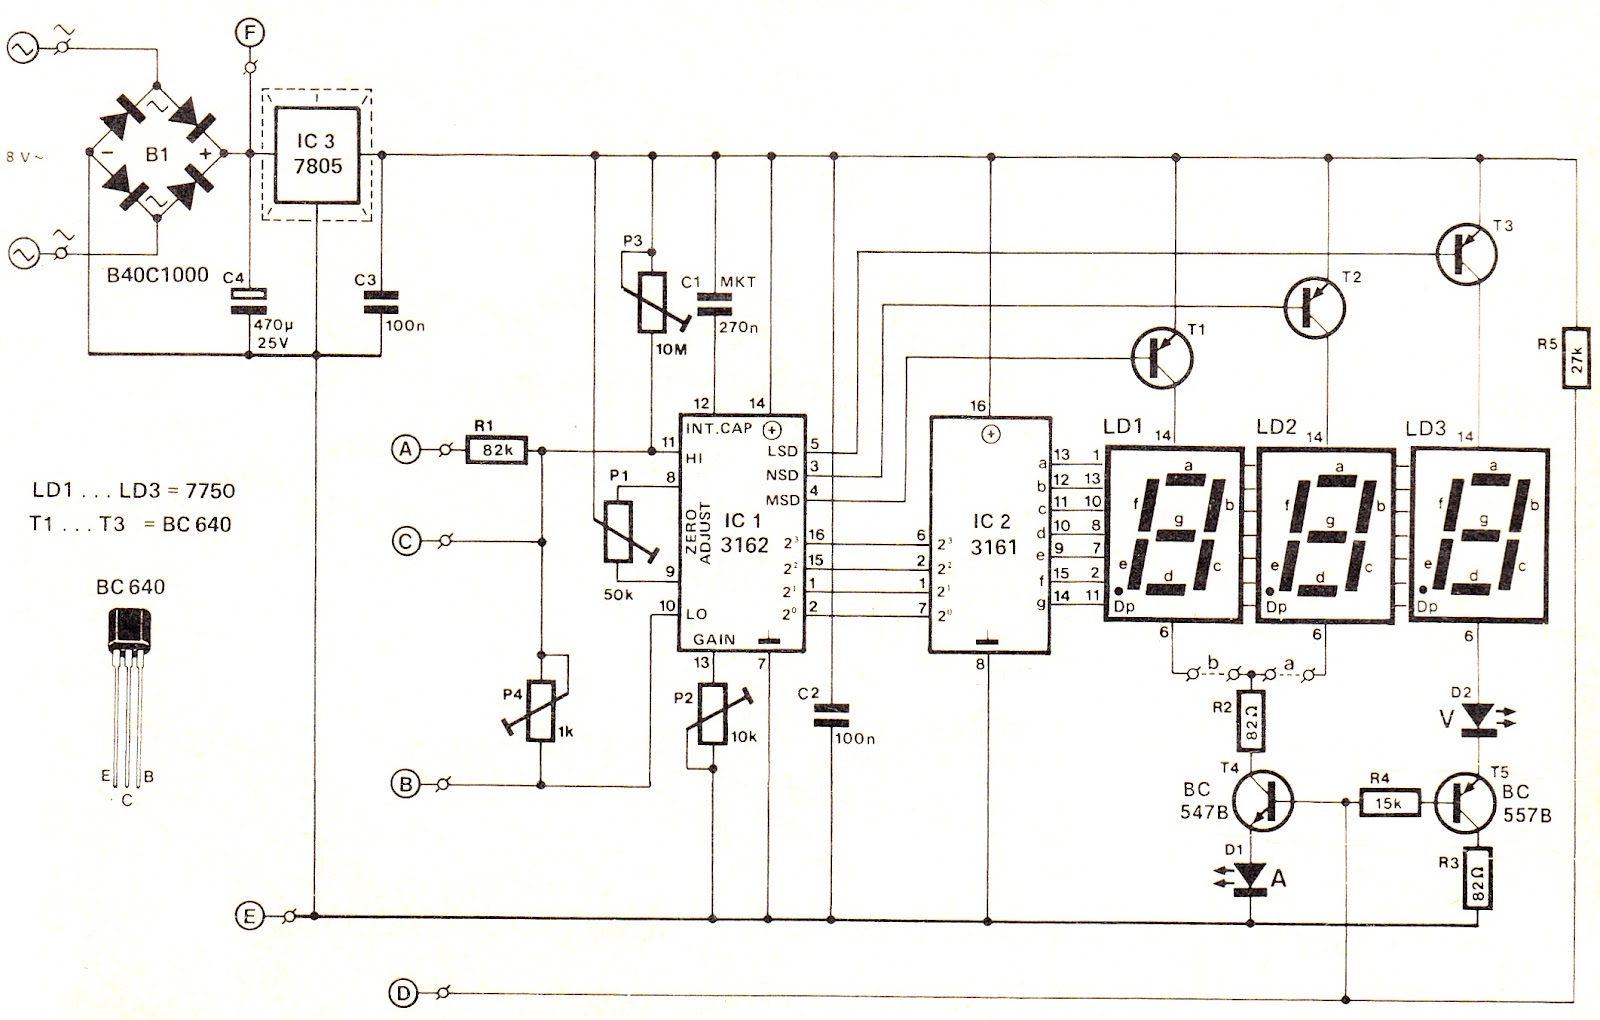 Digital Voltmeter And Ammeter Circuit Module L24854 on Ac Low Voltage Wiring Diagram